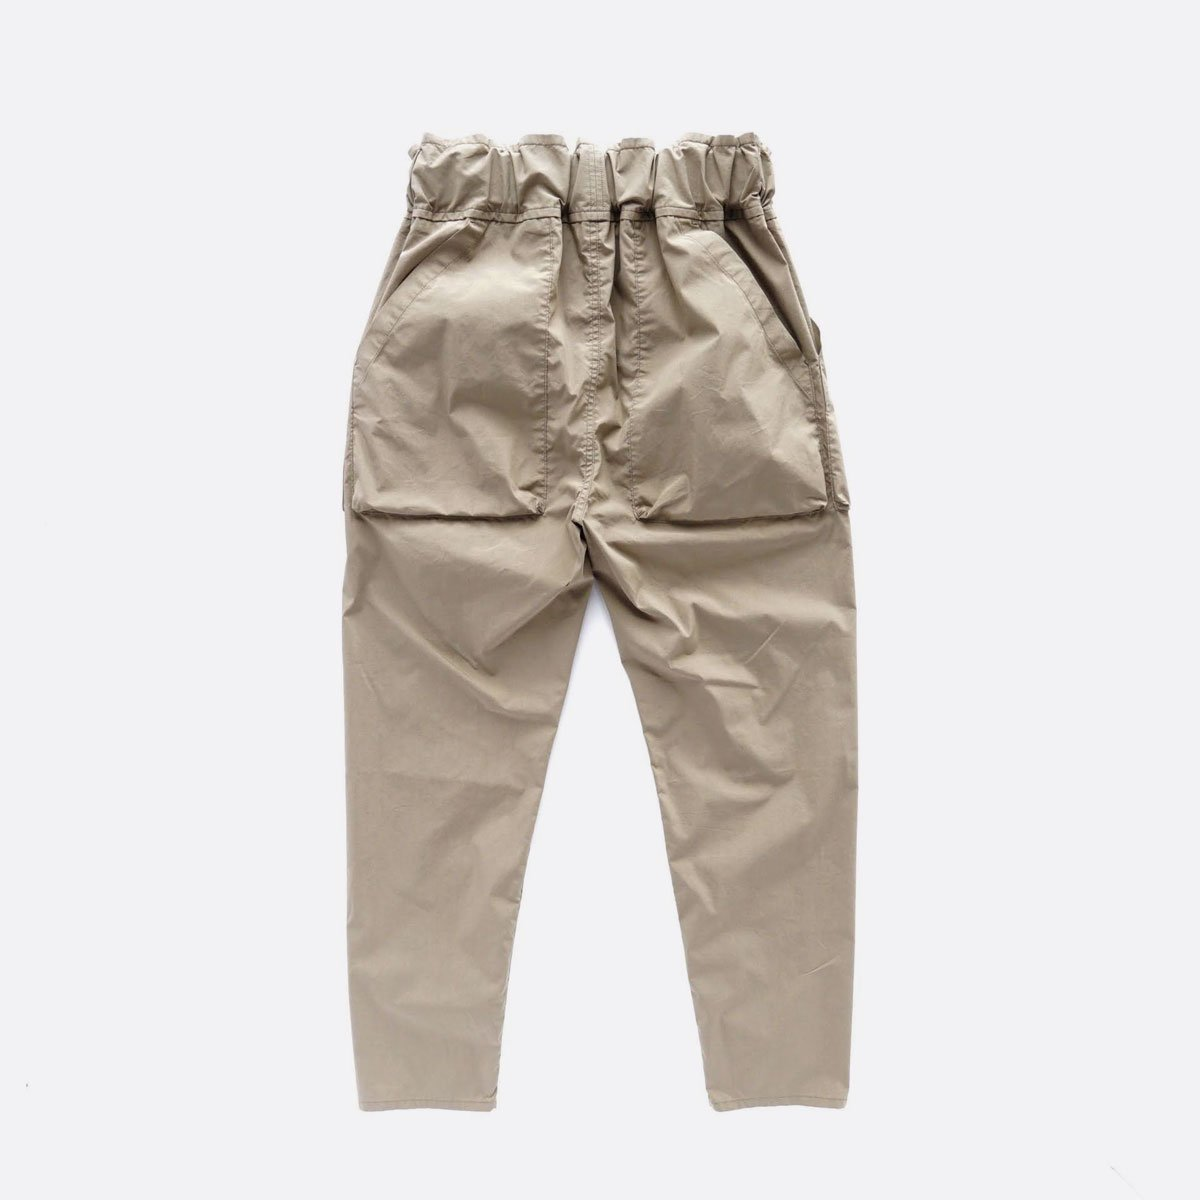 FIRMUM COTTON & POLYESTER STRETCH TYPEWRITER EASY TAPERED PANTS (LIGHT KHAKI)2